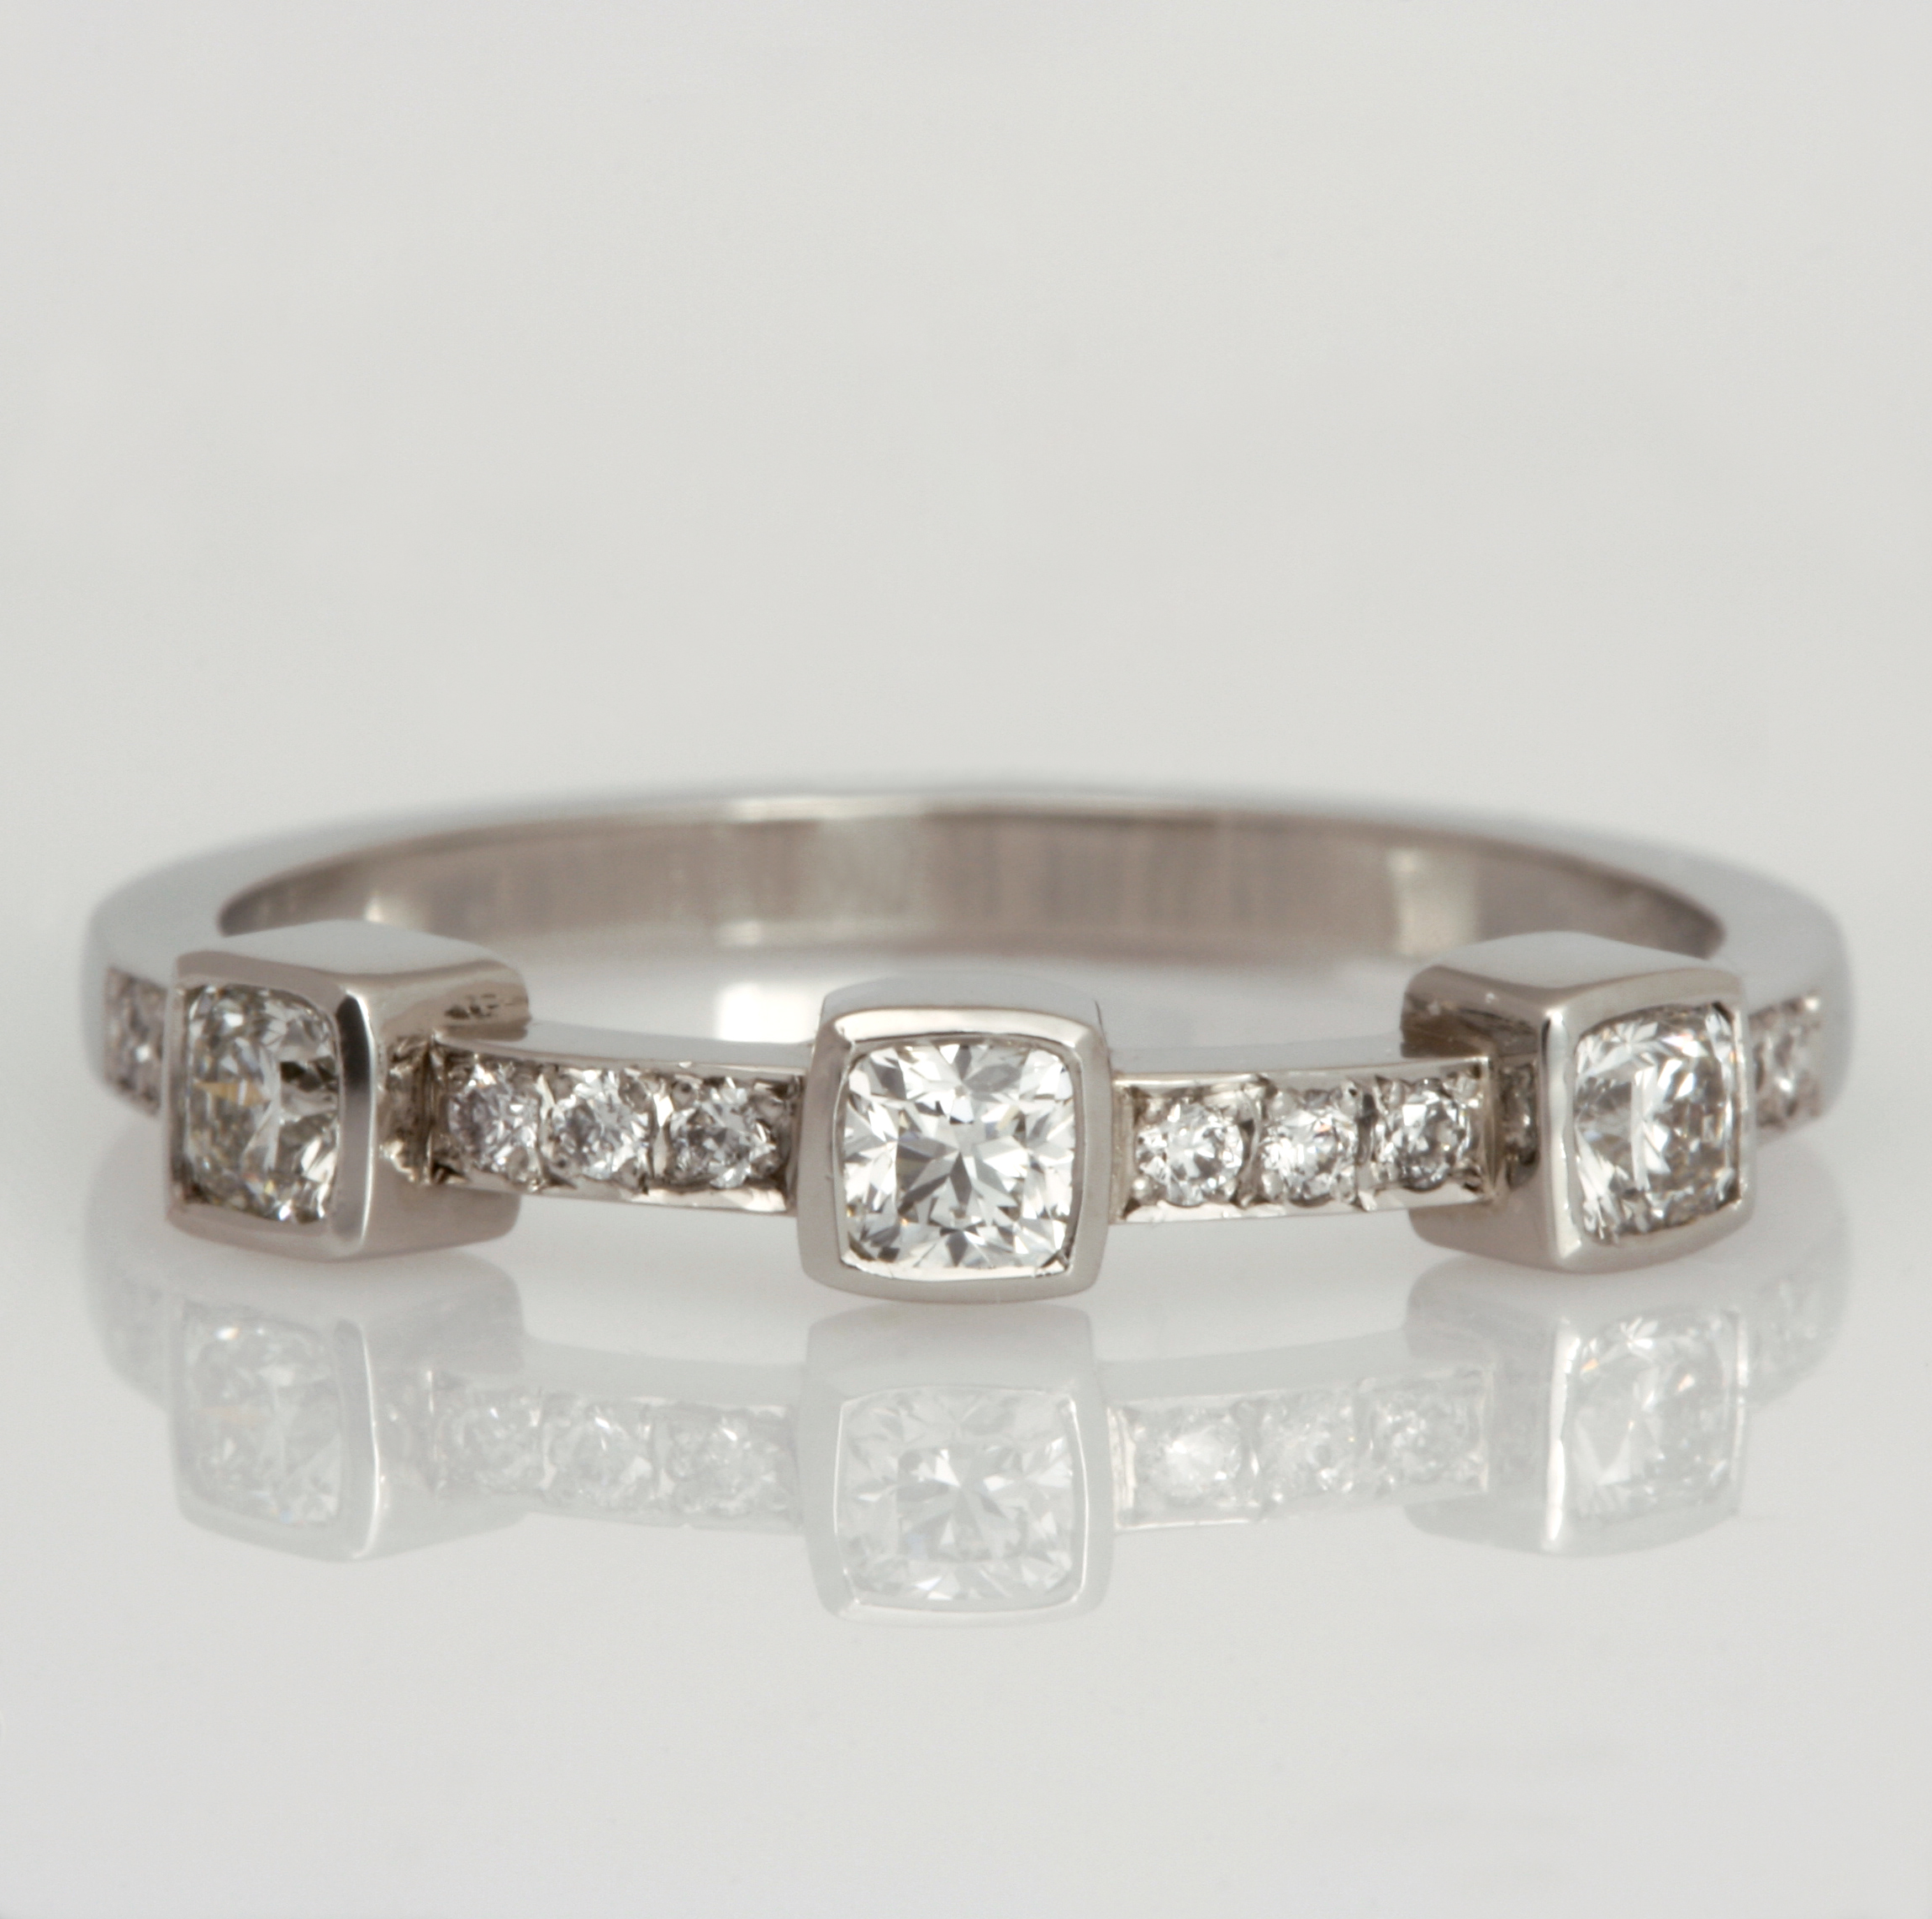 Handmade platinum and diamond ladies wedding ring featuring cushion diamonds